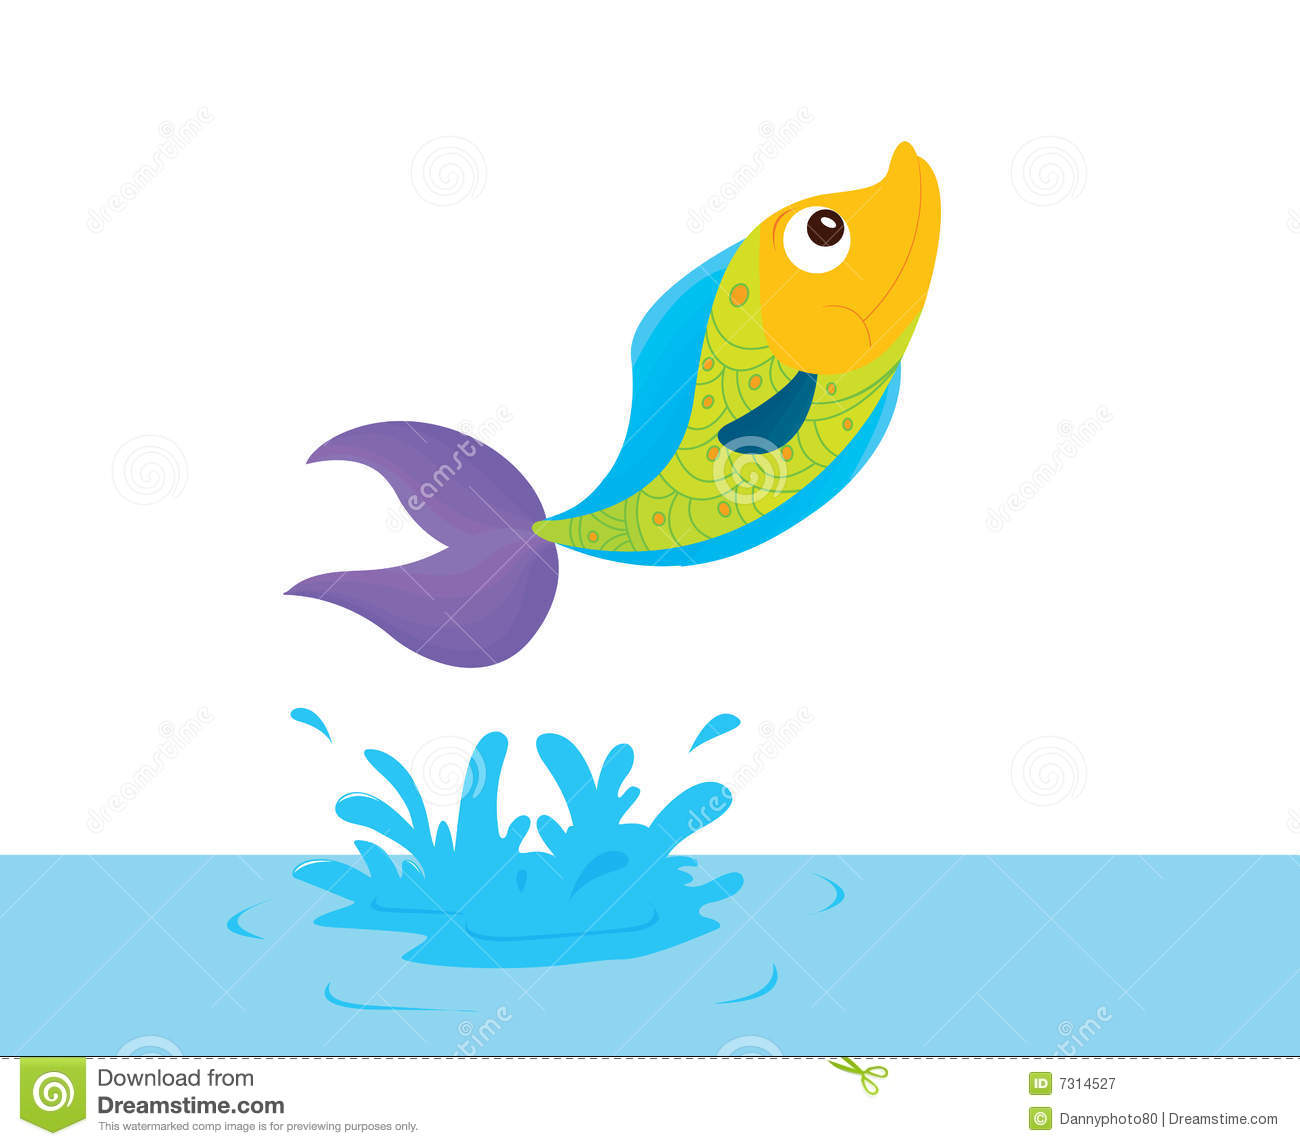 Cartoon fish jumping out of water clipart - photo#17